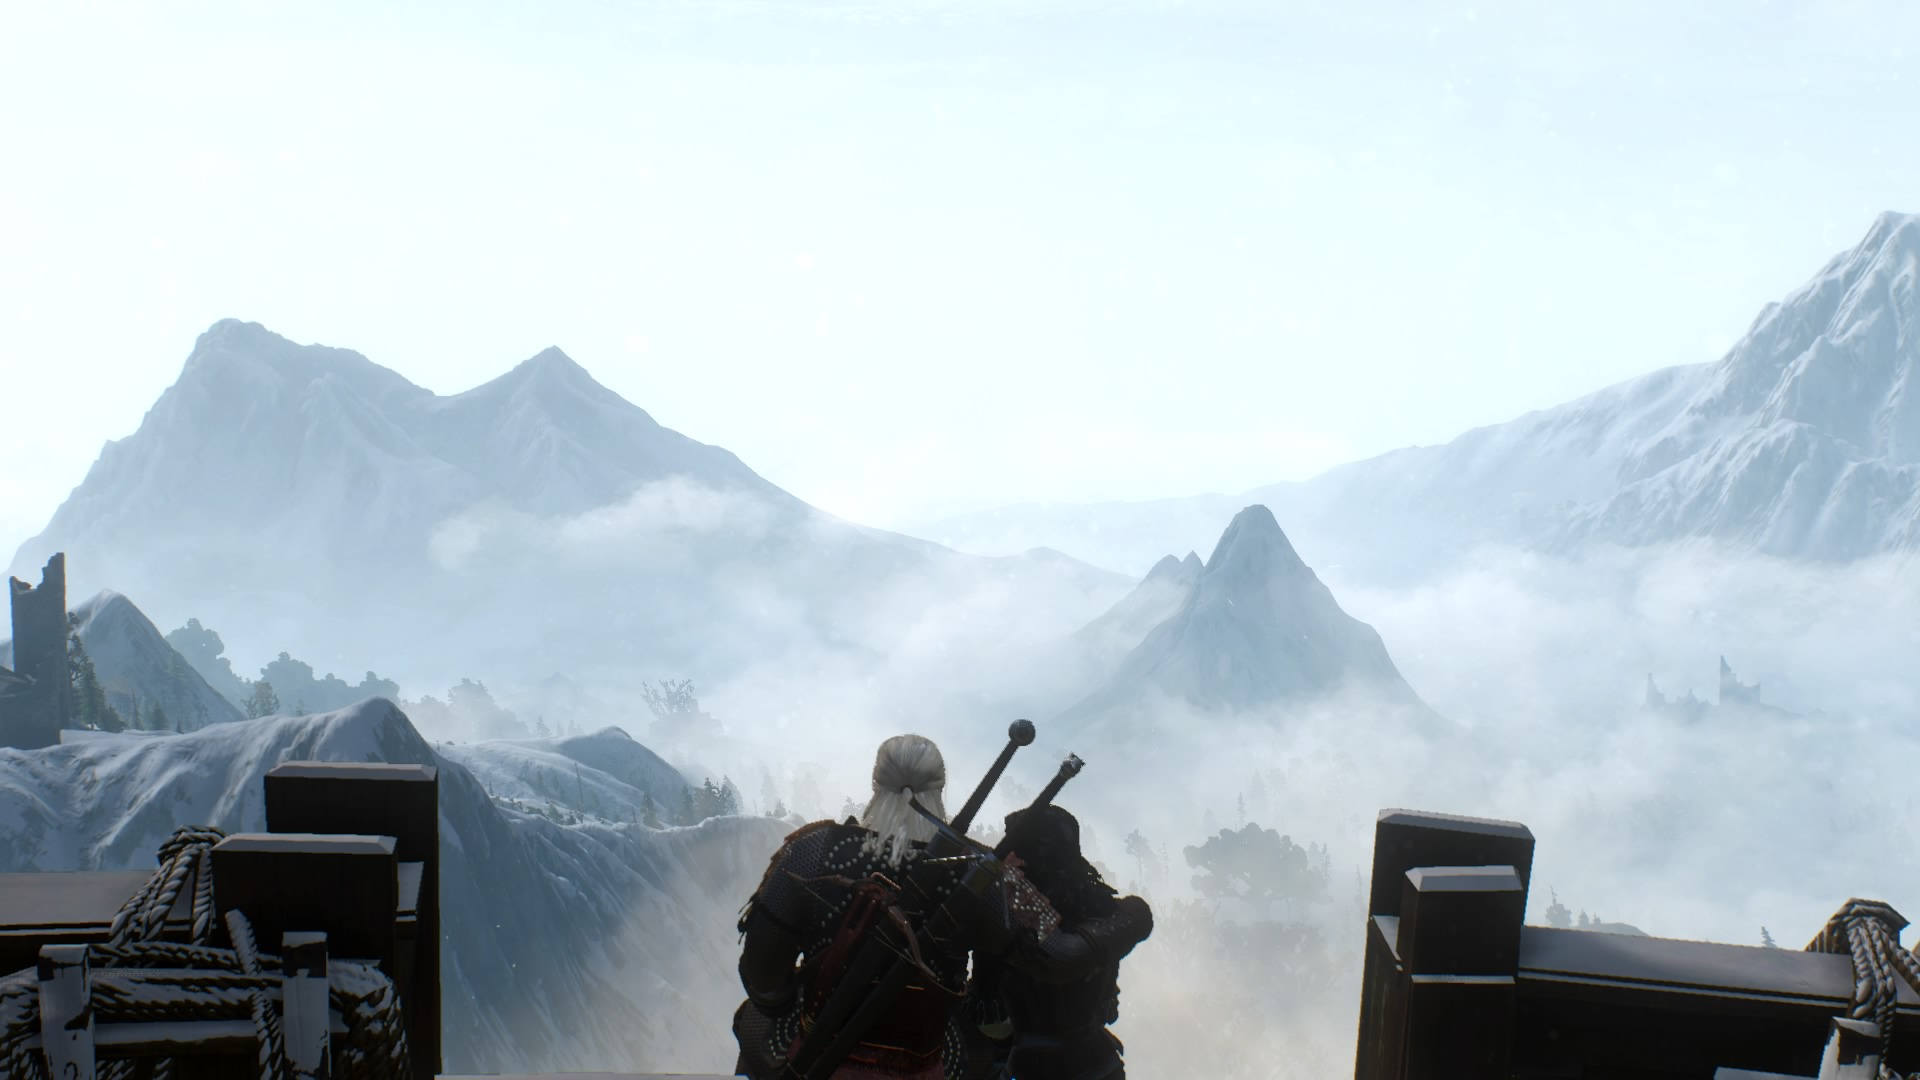 Geralt, a man with long white hair, with his arm around Yennefer, a woman with long dark hair, as they look over a misty mountain landscape